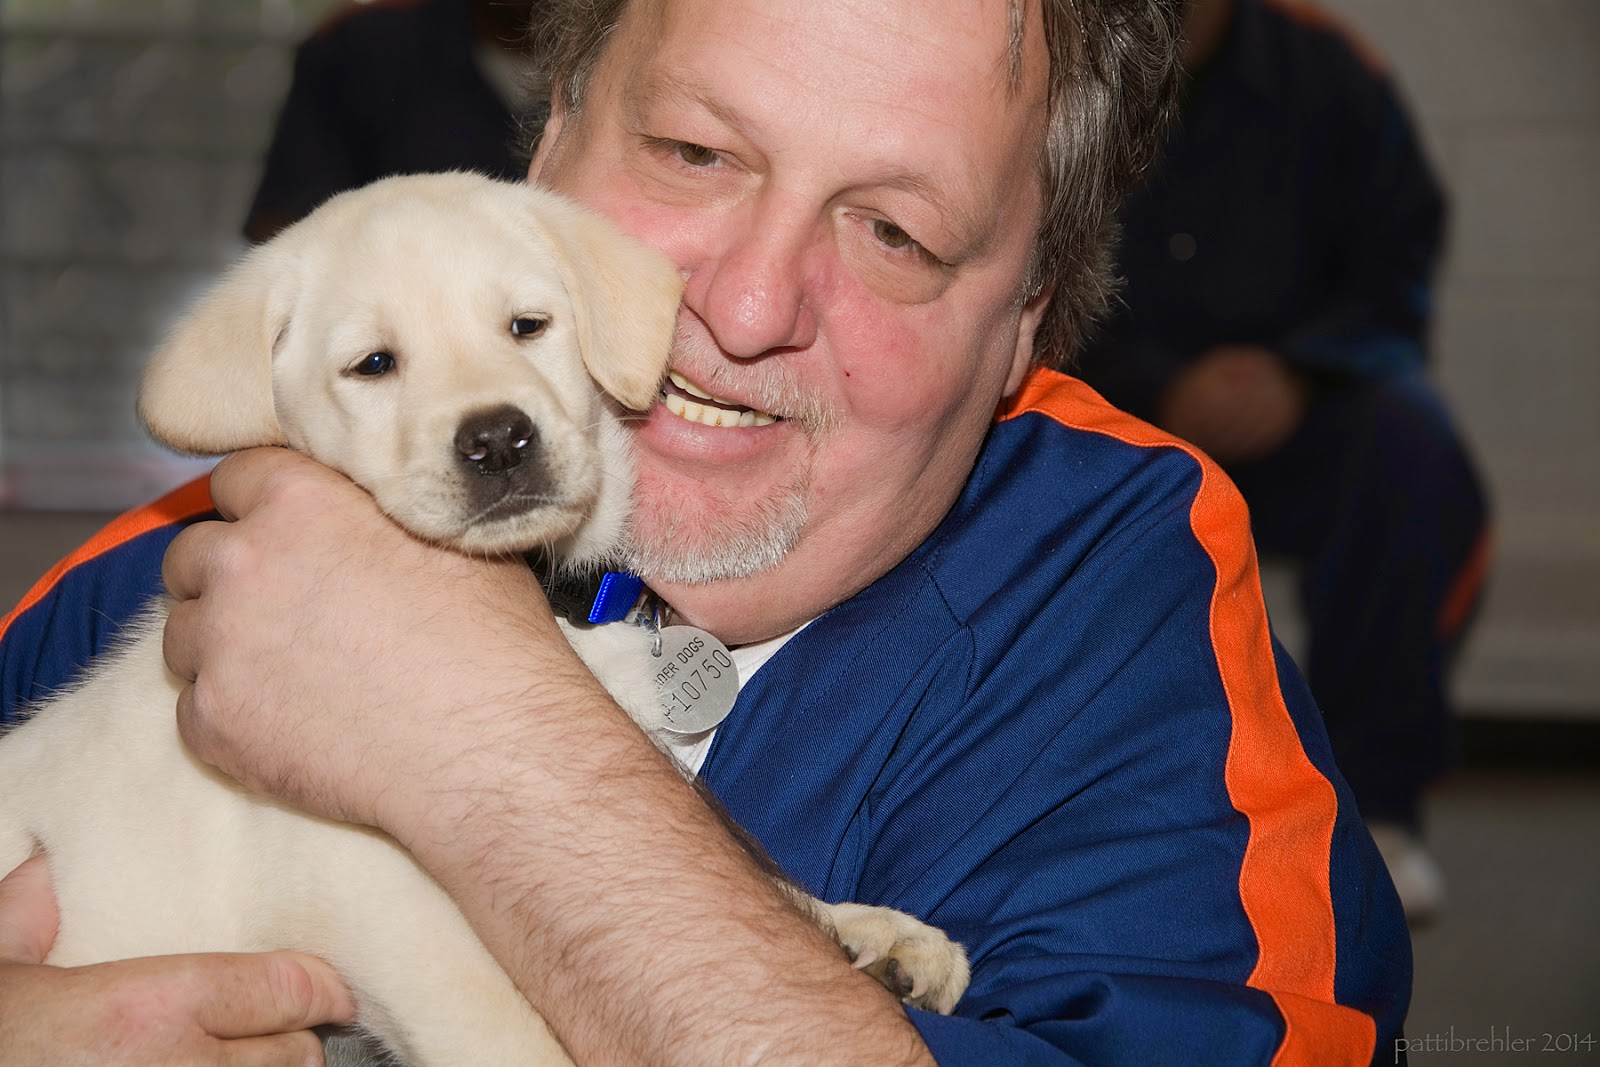 A close up shot of a man holding a small yellow lab puppy in his arms. The puppy is facing the camera with his head pressed against the man's right cheek. The man is wearing the blue and orange prison shirt and his left hand is embracing the puppy's neck and shoulder.